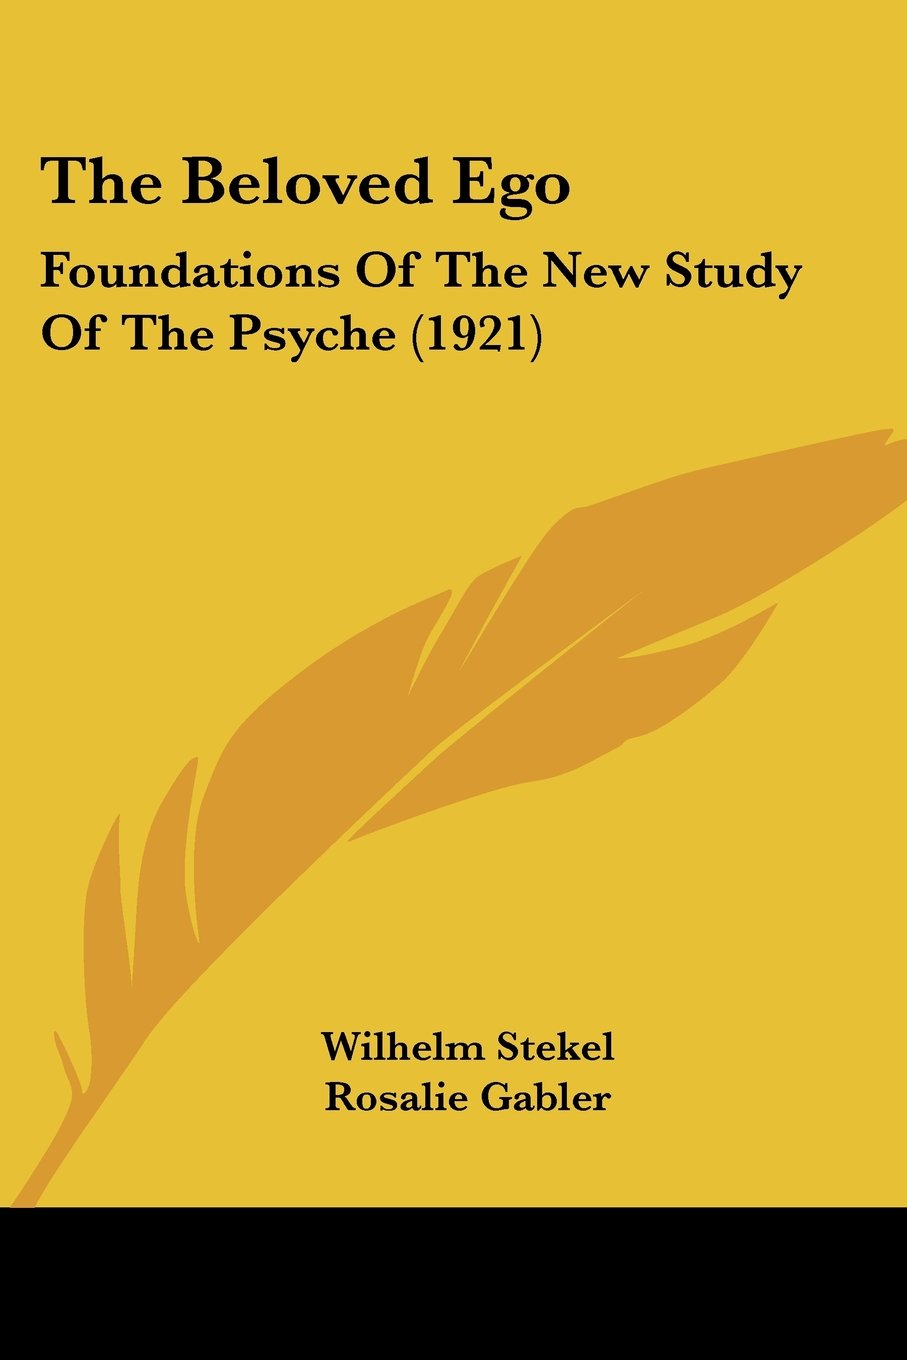 Download The Beloved Ego: Foundations Of The New Study Of The Psyche (1921) pdf epub